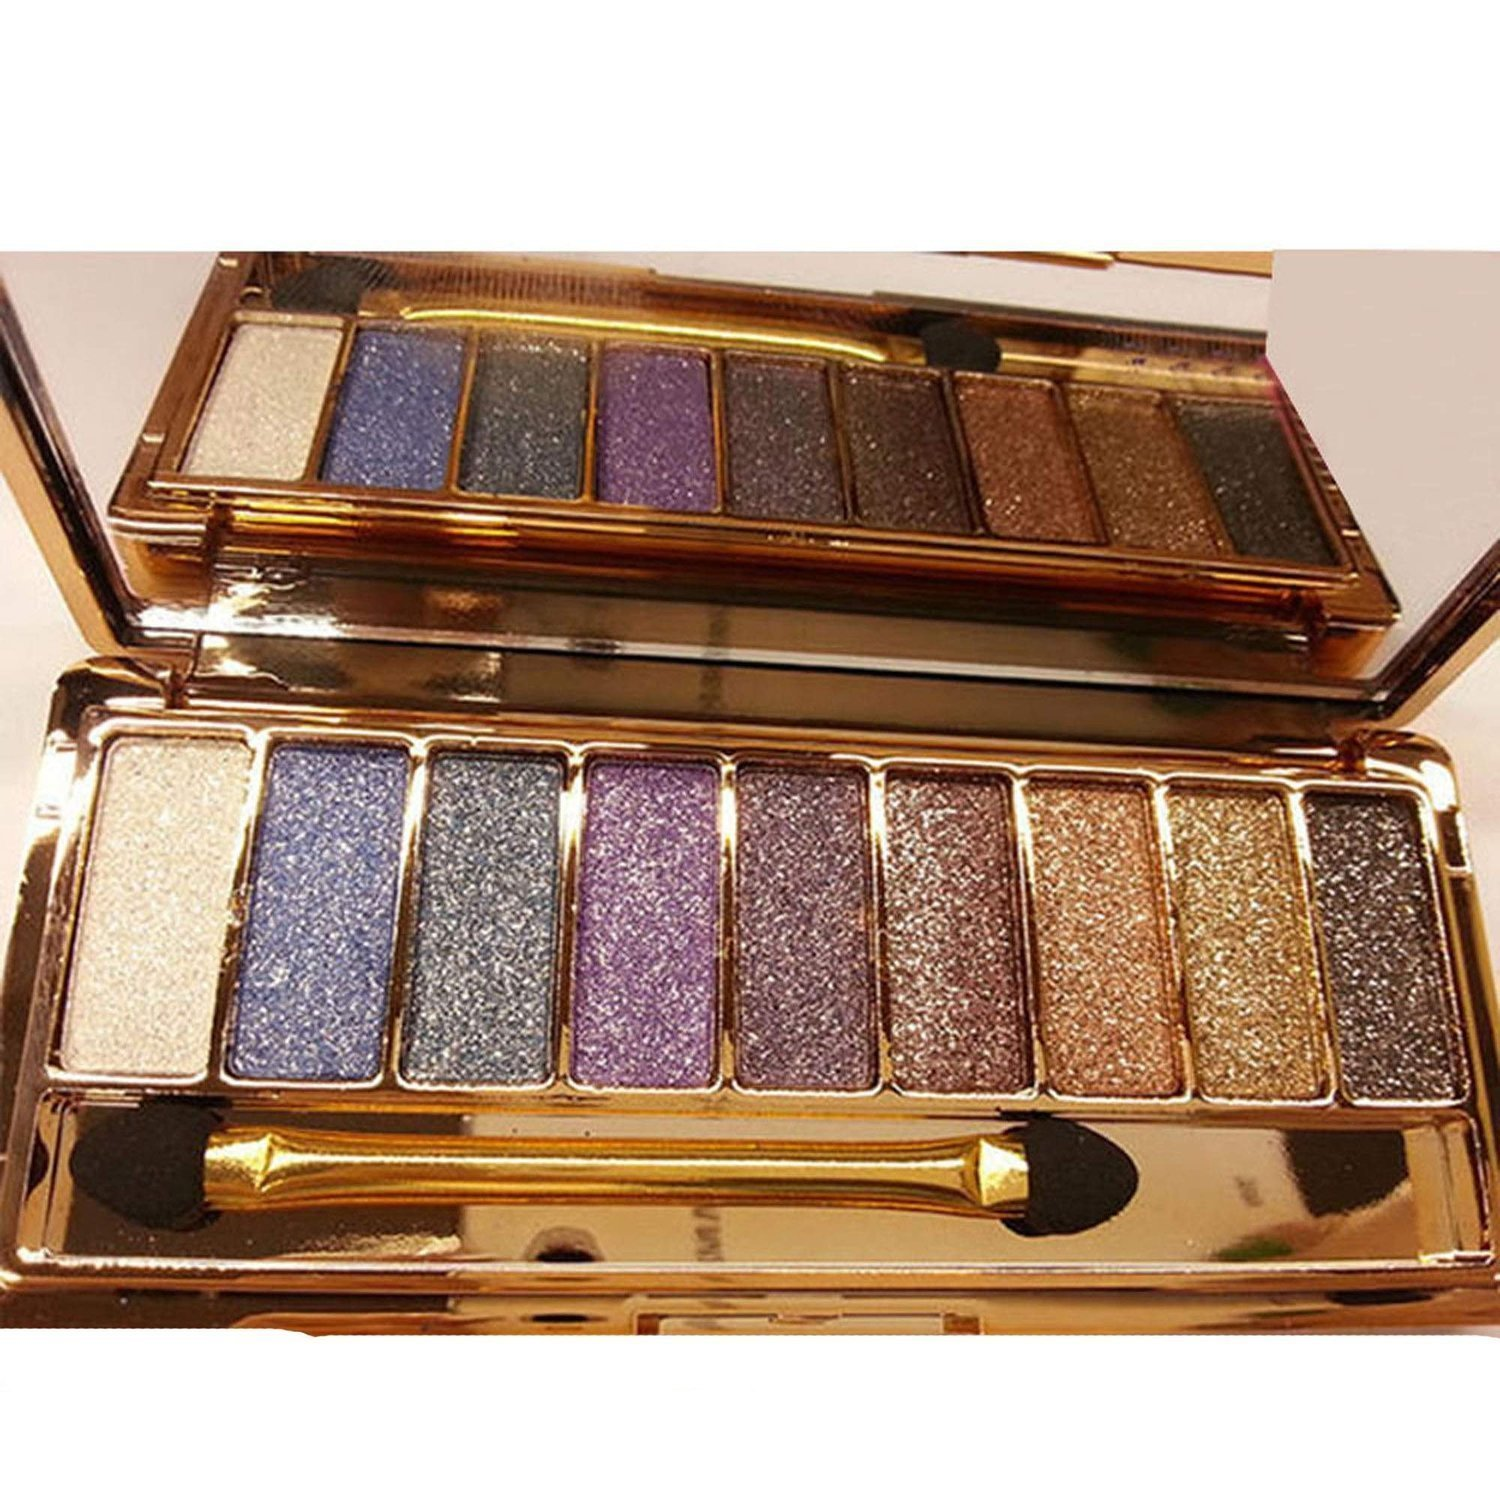 Glitter Eyeshadow, 9 Colors Pigmented Eyeshadow Palette Bright Eye Makeup Shimmer Eyeshadow Pallet -Xmas Gift for Mom,Couples,Girlfriend,Daughter,Women and Girls